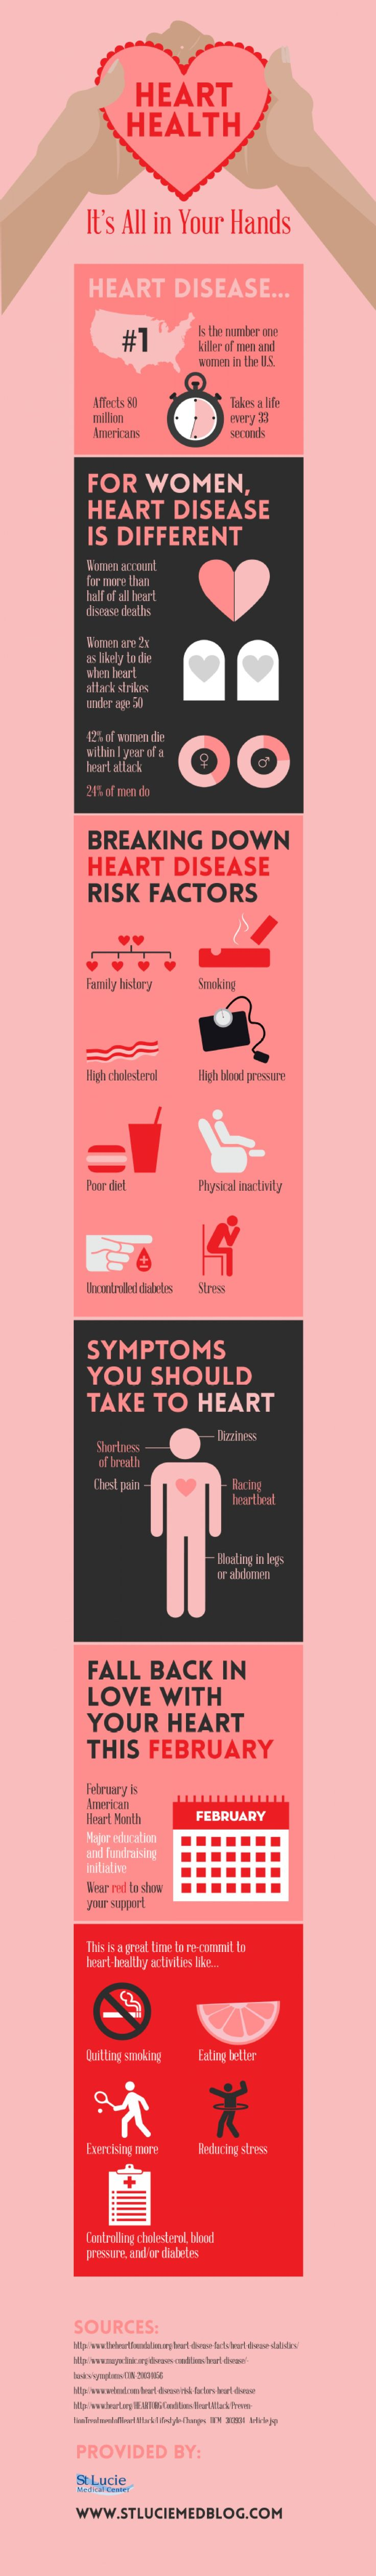 Heart Health: It's All in Your Hands -February is American Heart Month! Wear red to show your support for this major education and fundraising initiative. Discover important heart health facts by clicking over to this infographic  -shared by BrittSE | published Feb 14, 2014 in Health